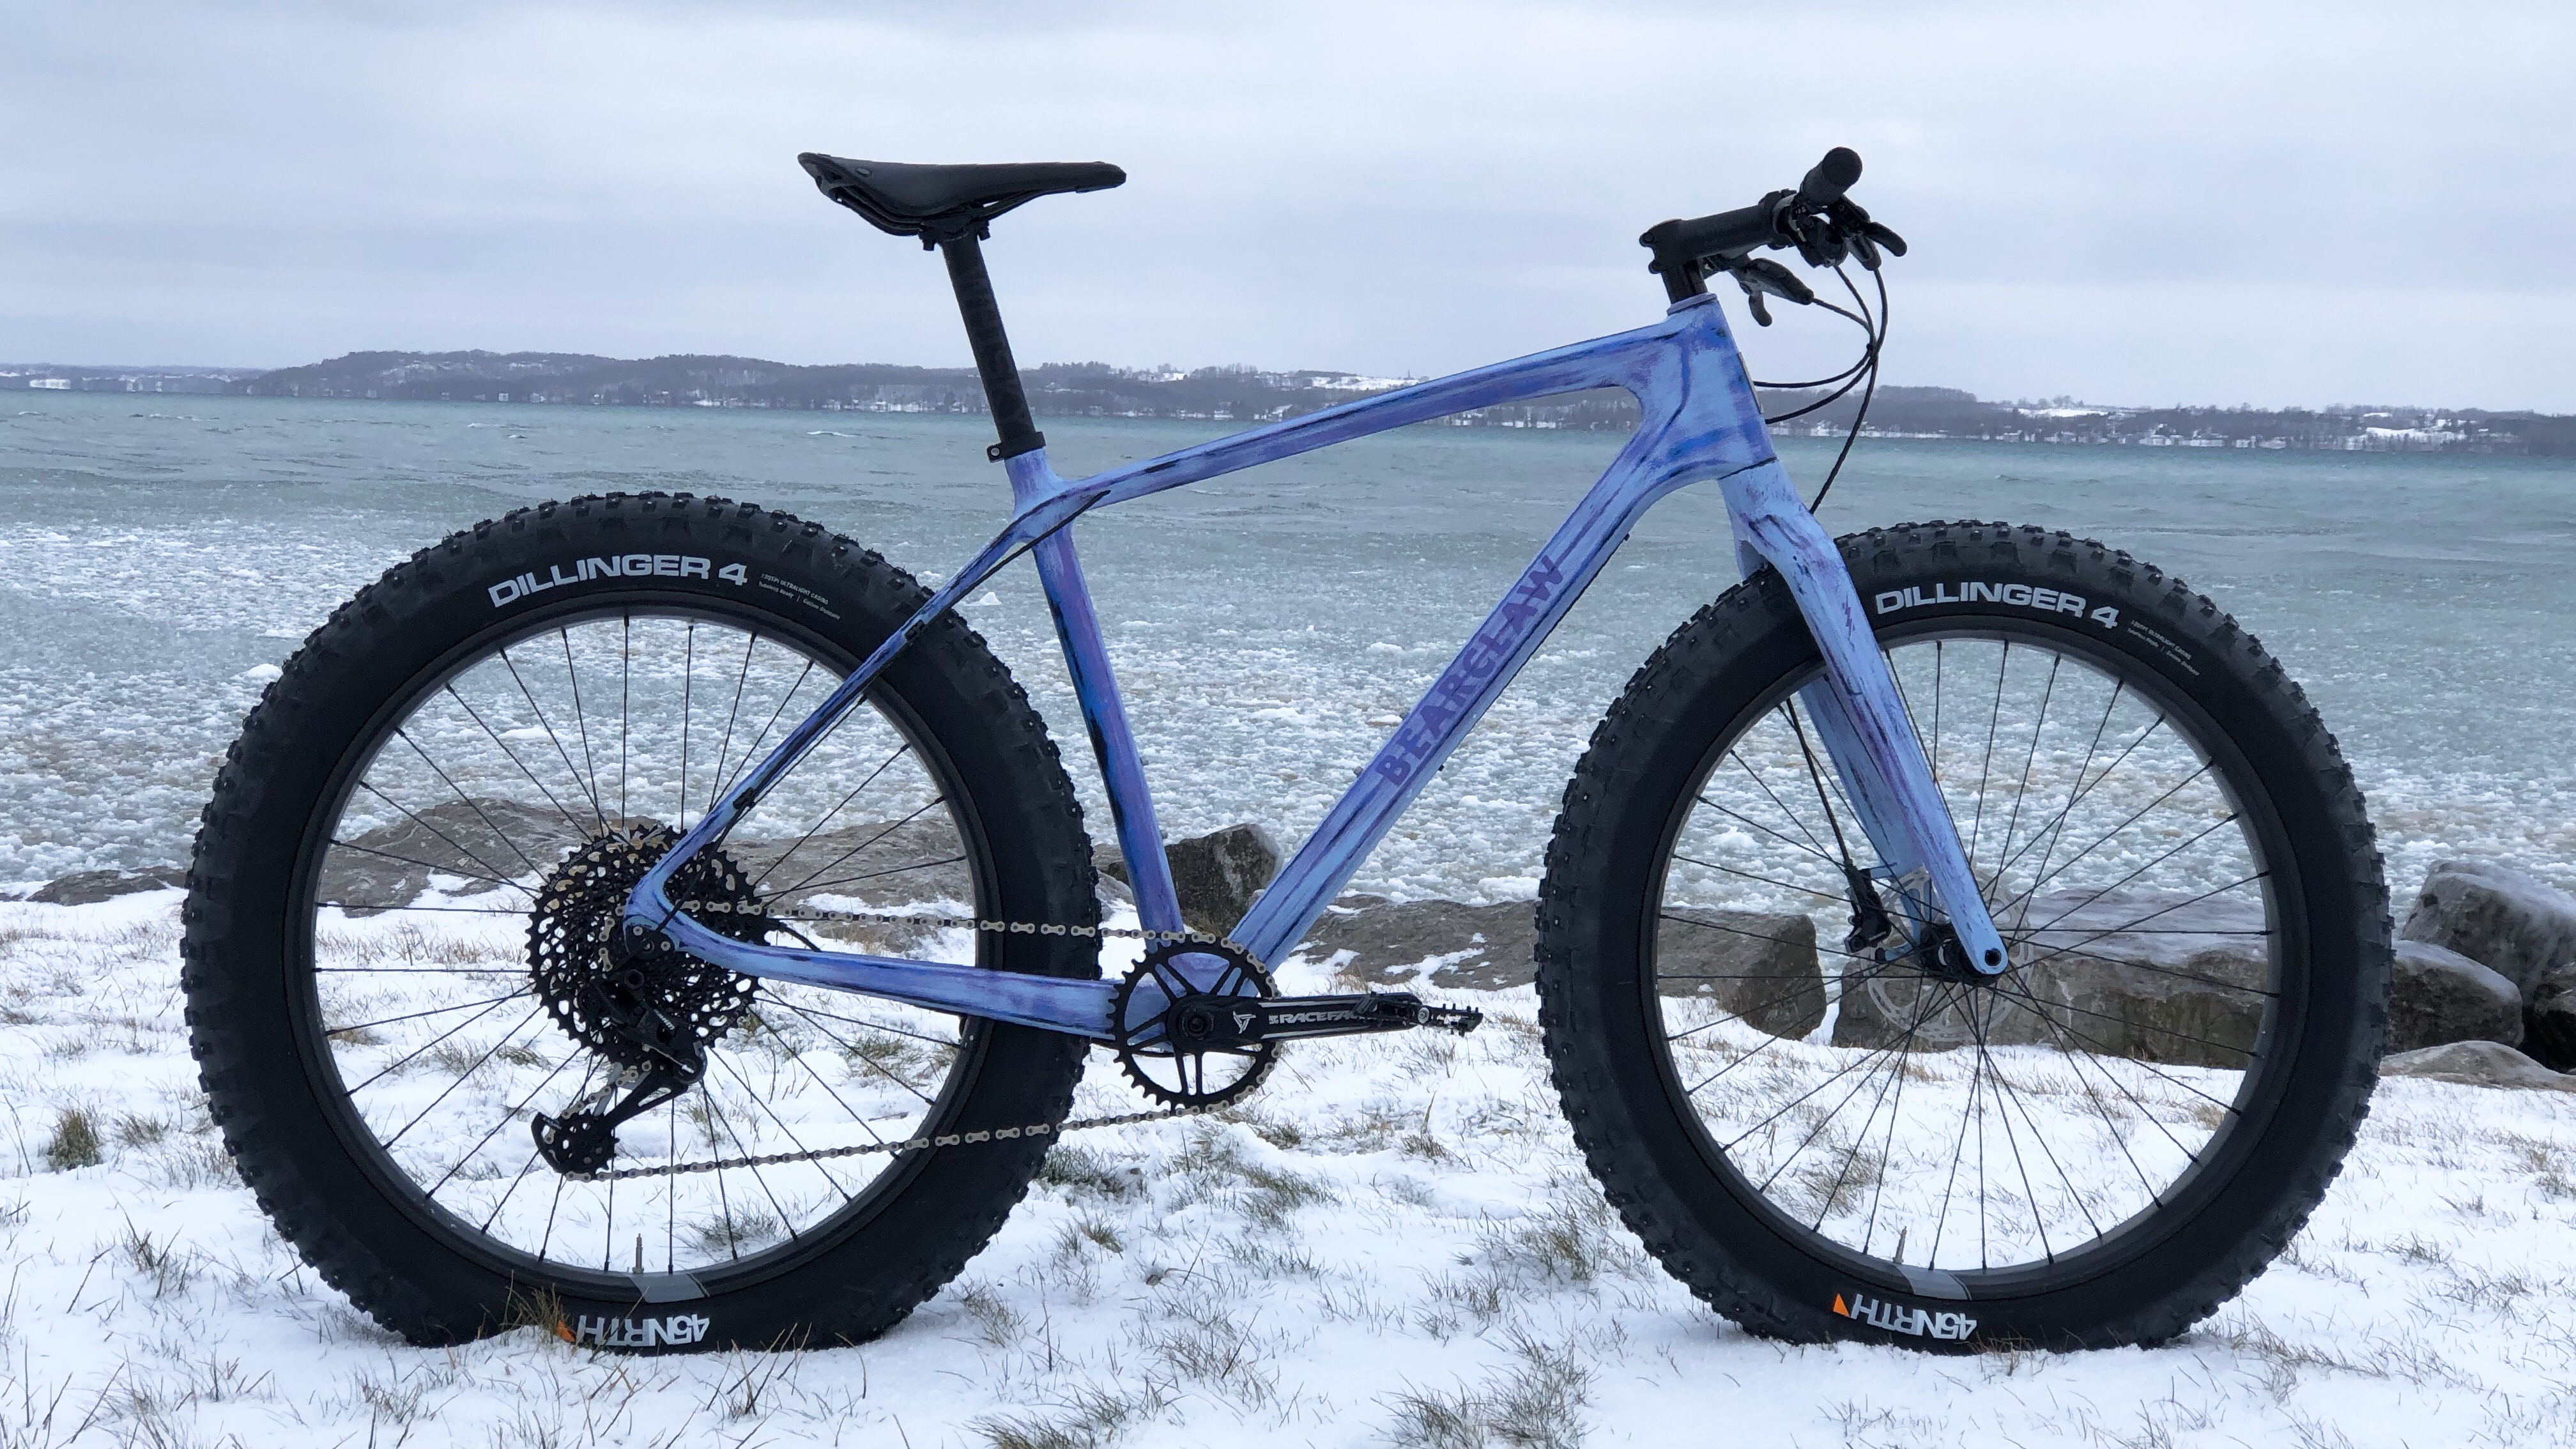 BBCo  | Titanium Bikes, Bikebacking Adventure Bikes, All Road Bikes